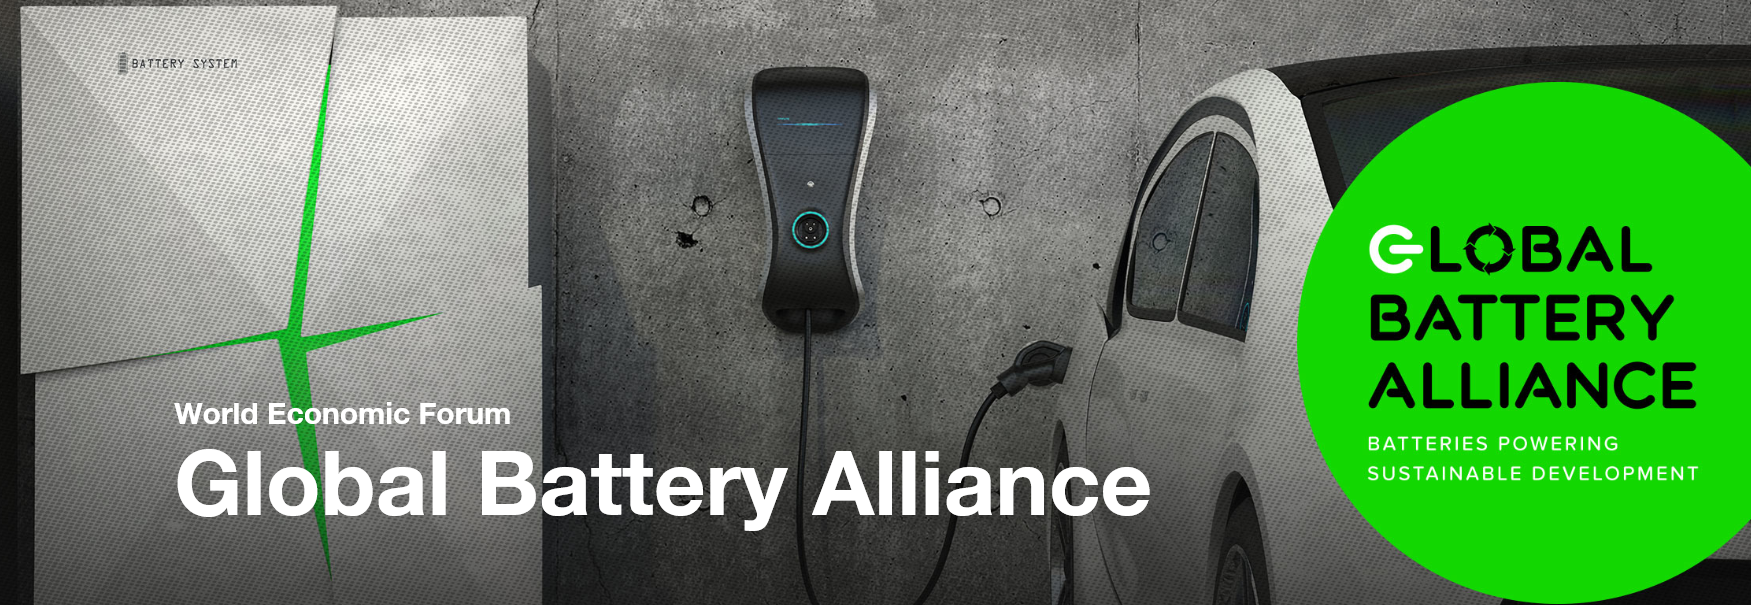 GlobalBatteryAlliance